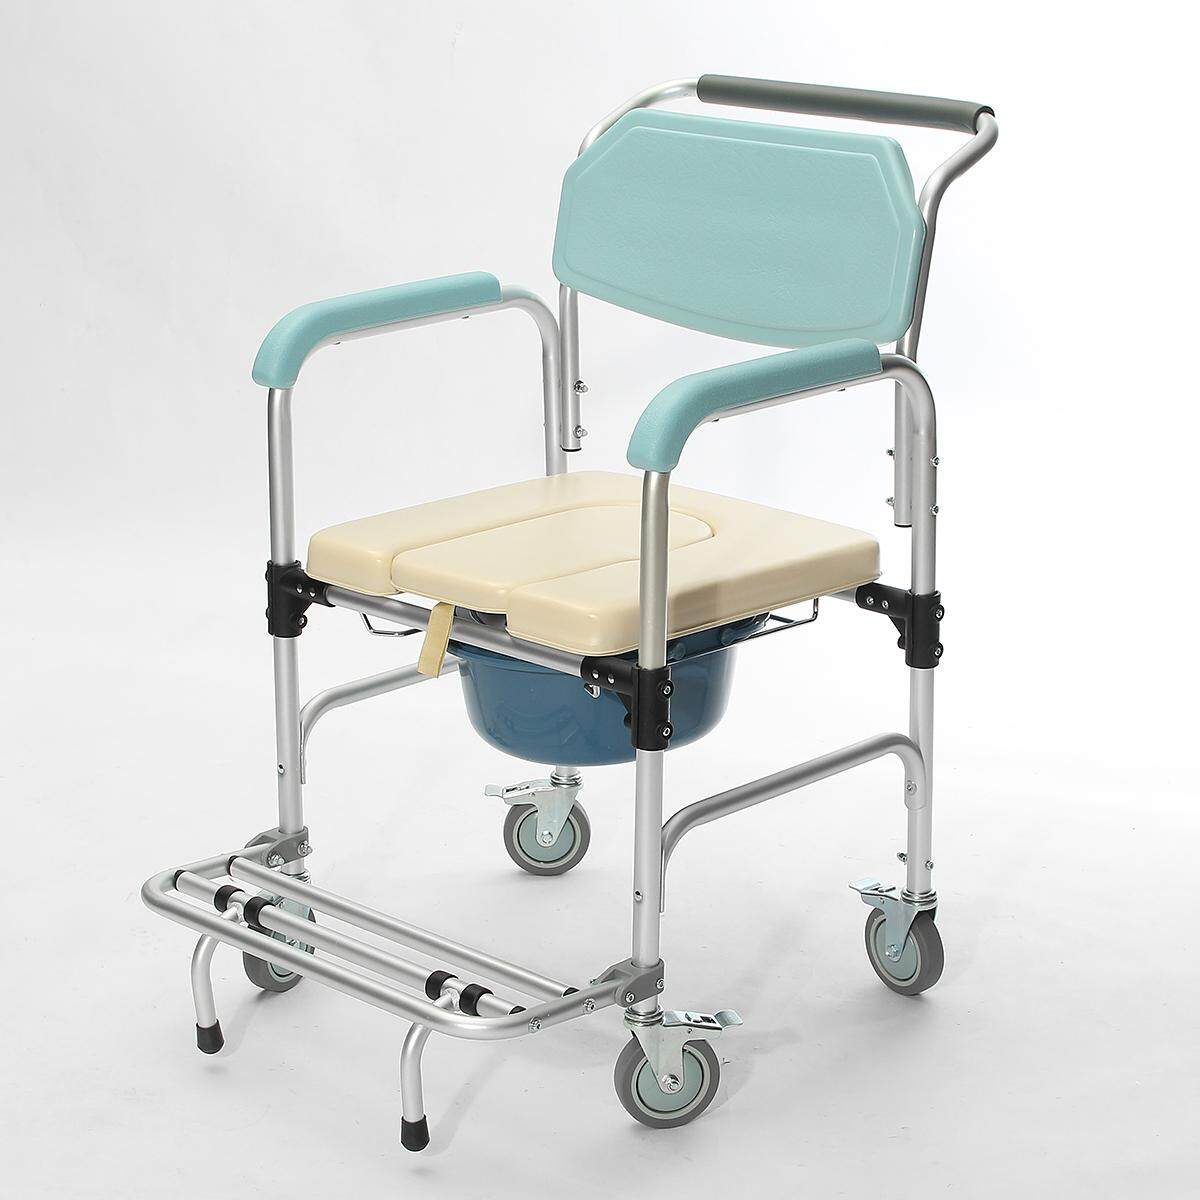 Buy Comfy Wheelchairs | Medical Supplies | Lazada.sg